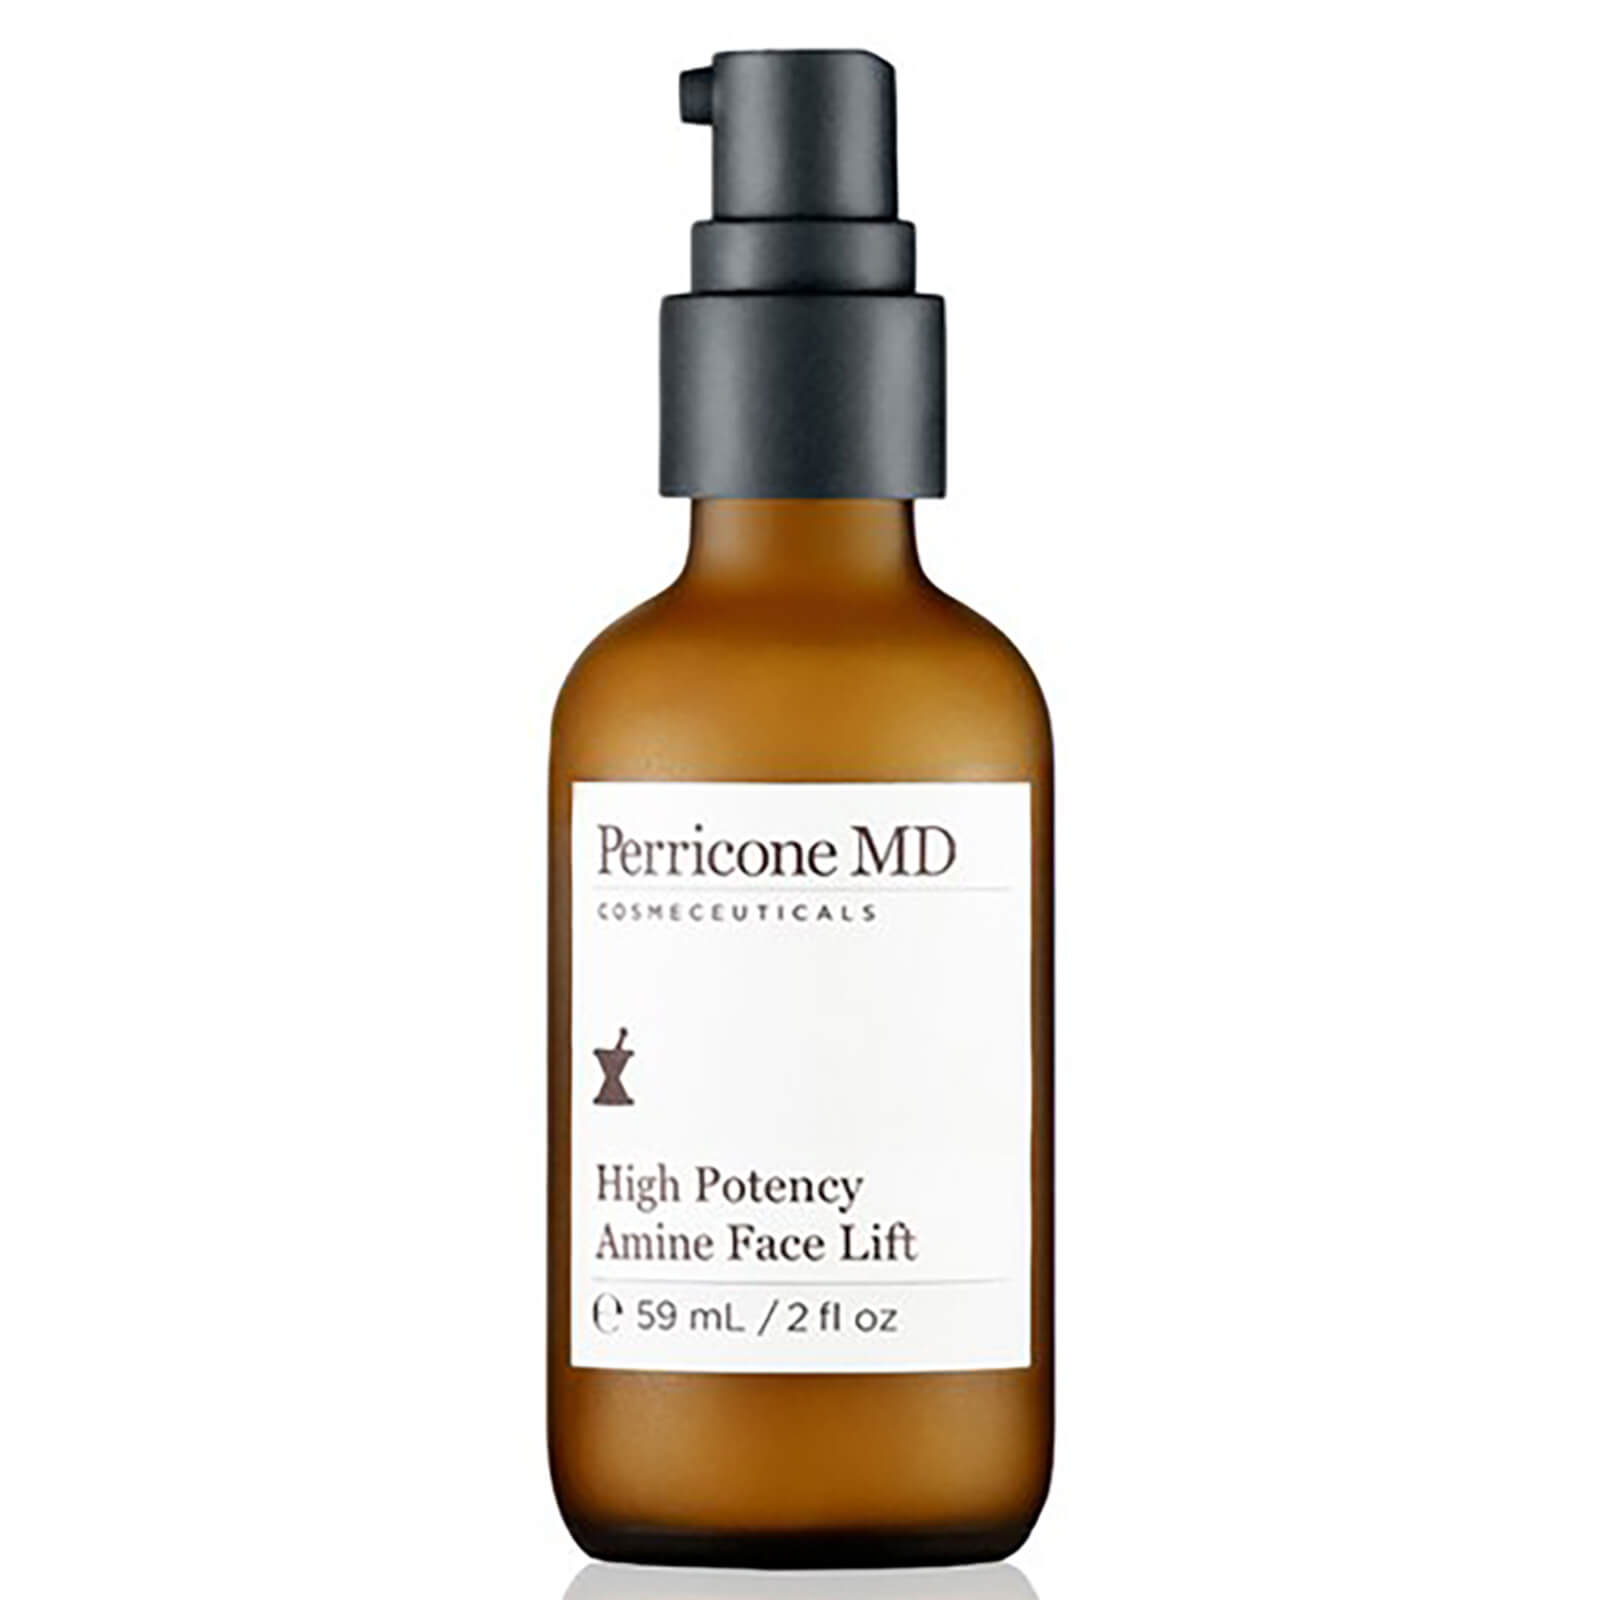 Perricone MD High Potency Amine Face Lift (59ml)